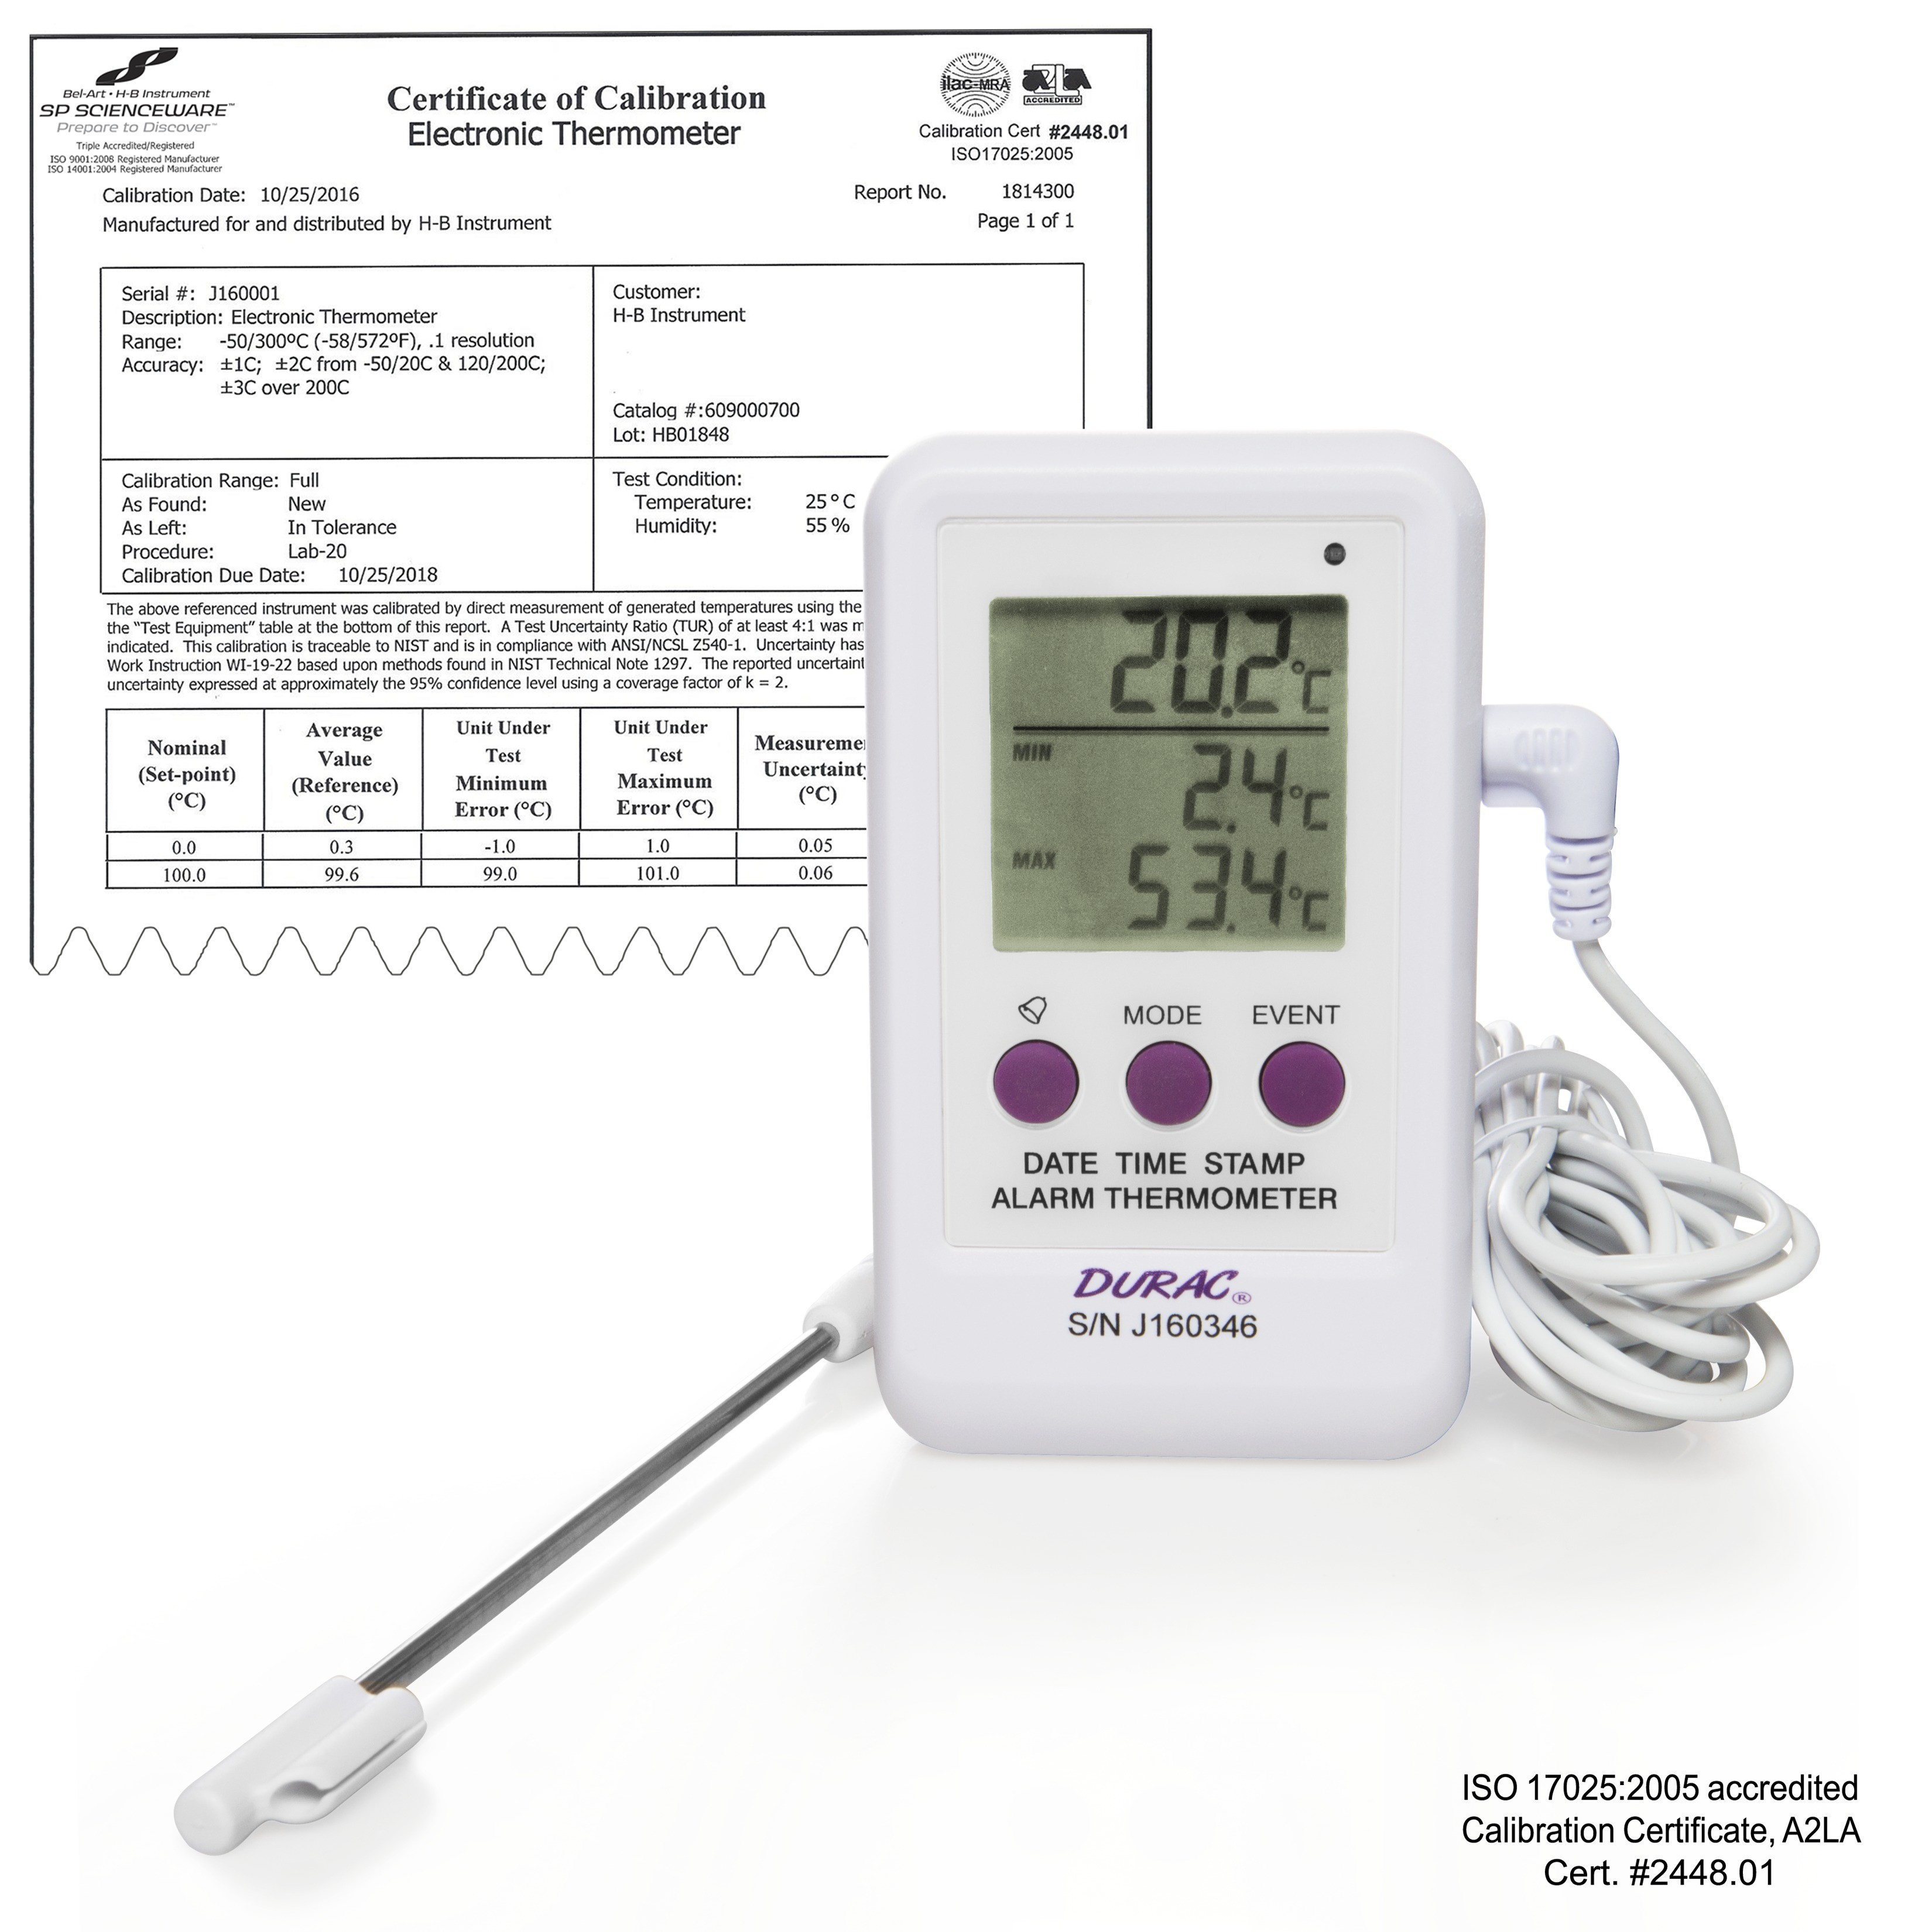 H-B DURAC Calibrated Electronic Thermometer / Event Logger